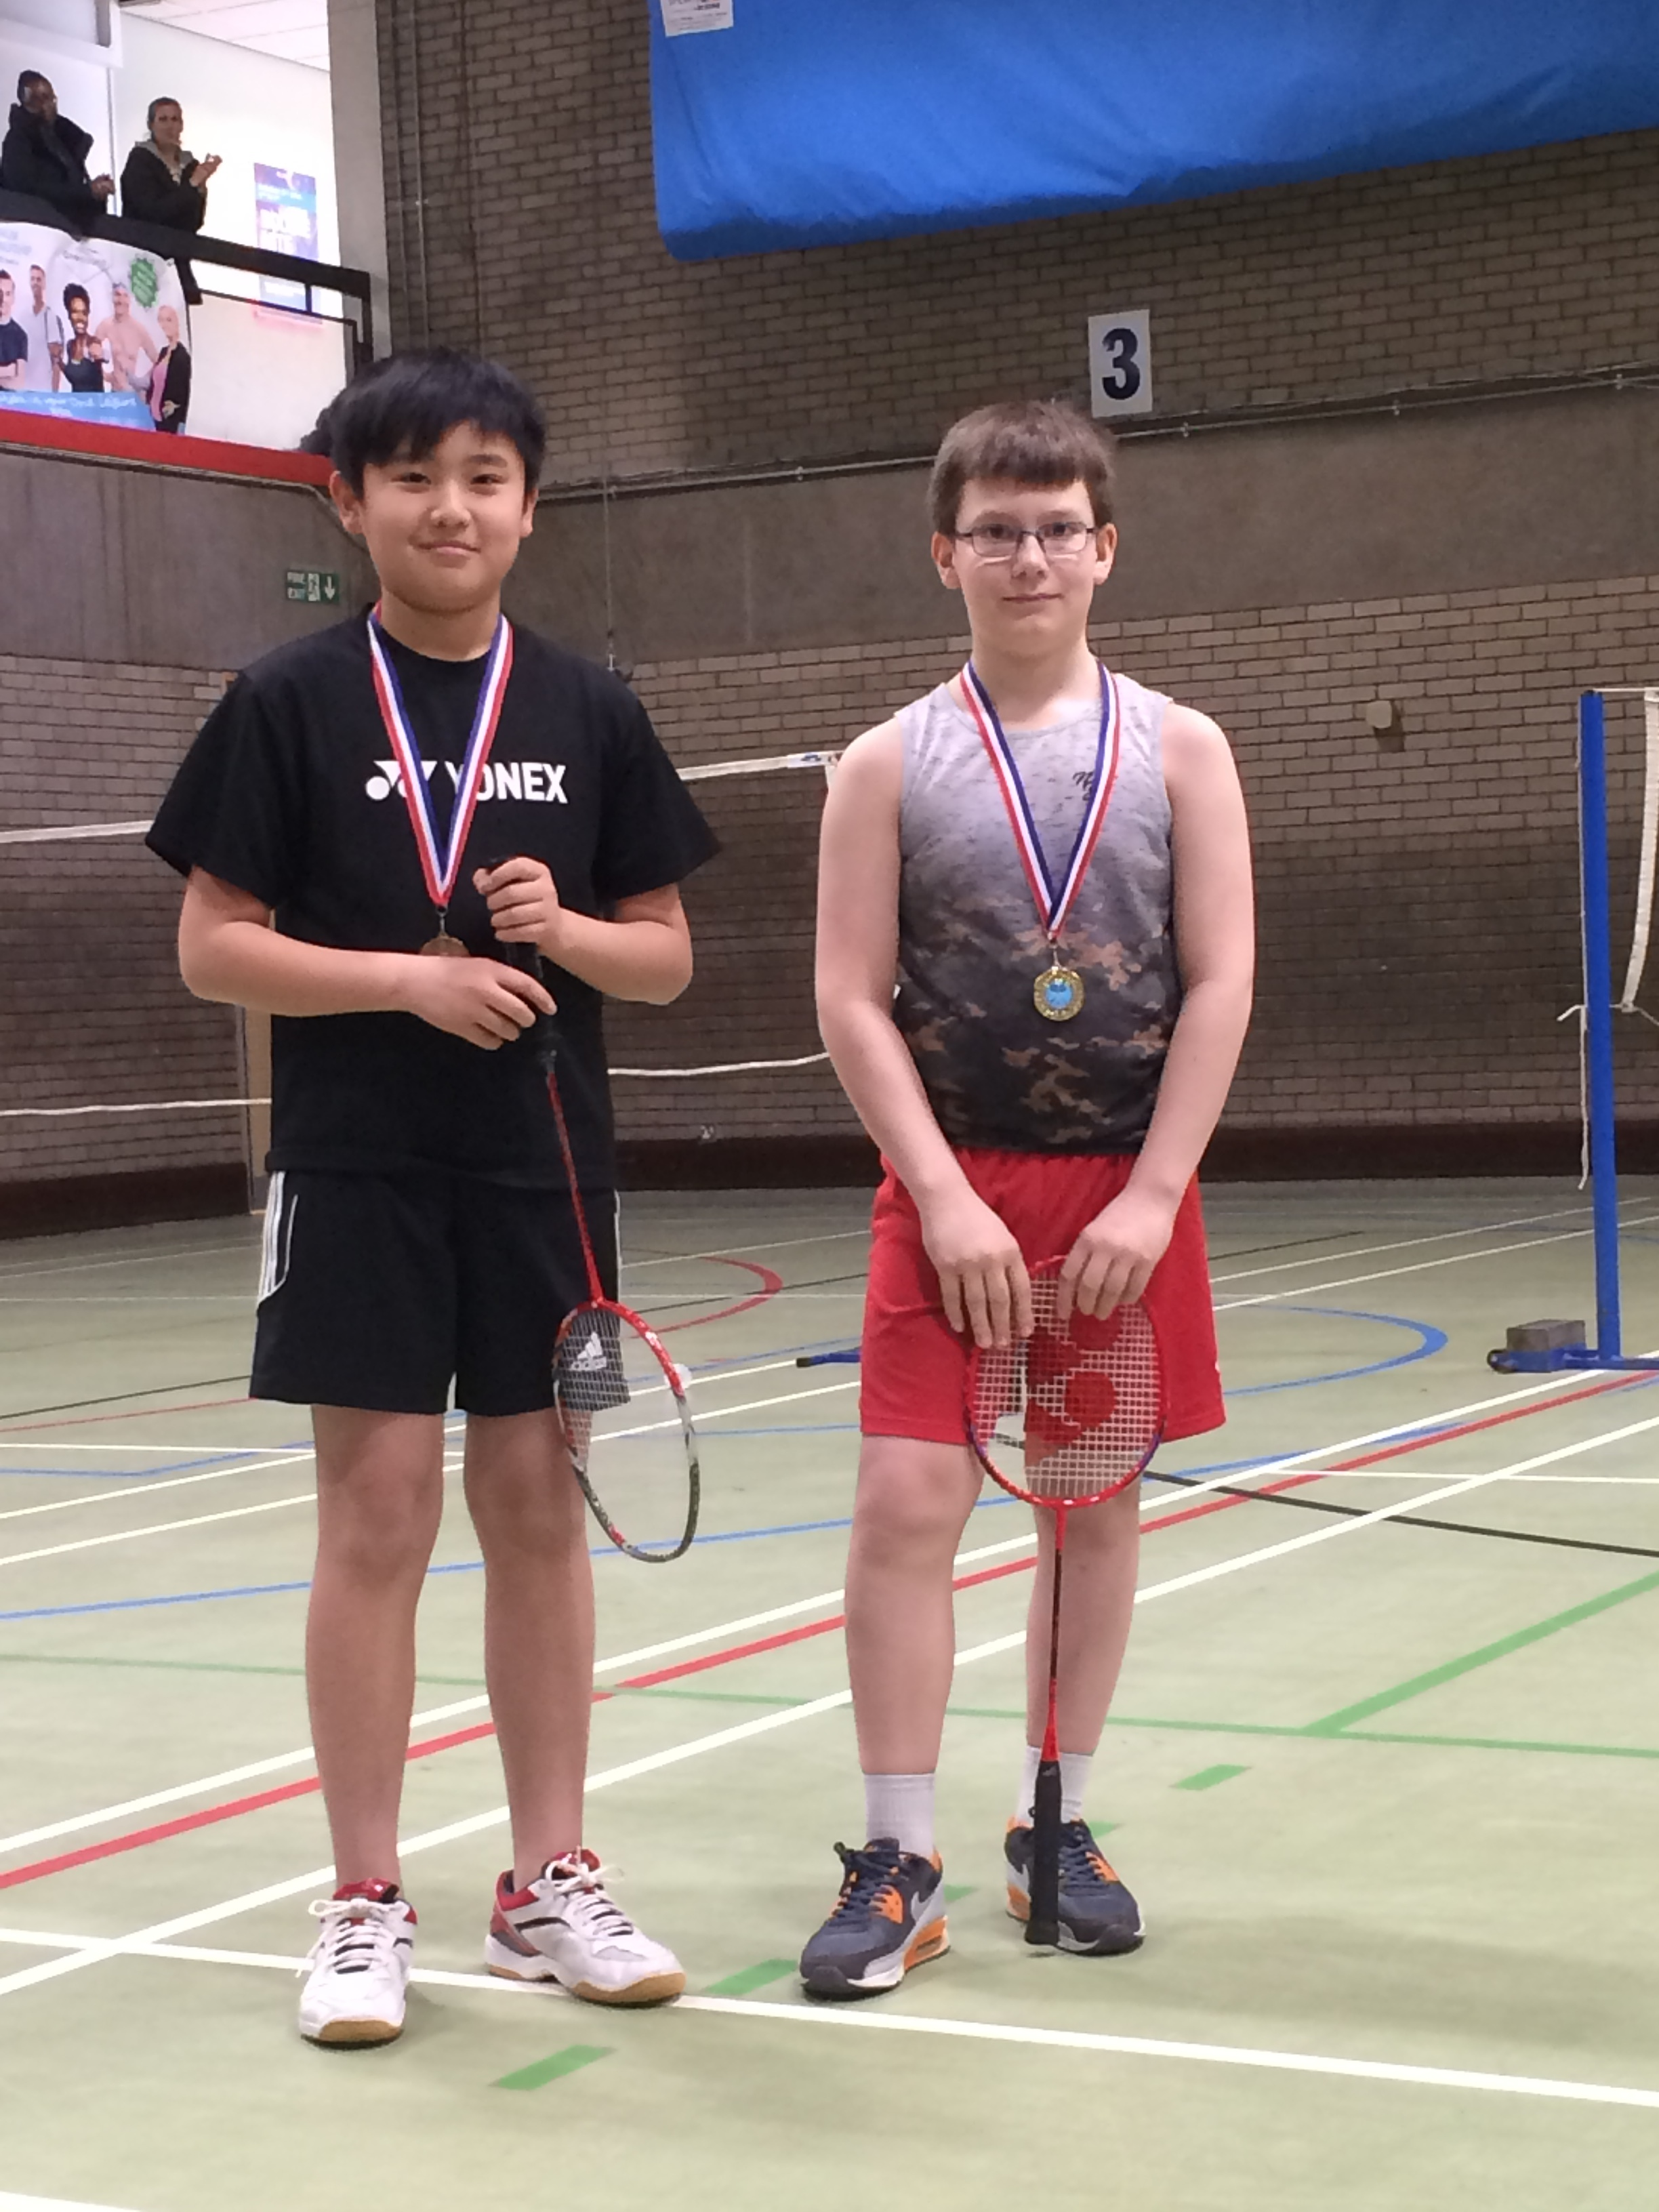 U13 boys doubles winners: Zihong He/Ashley Cole